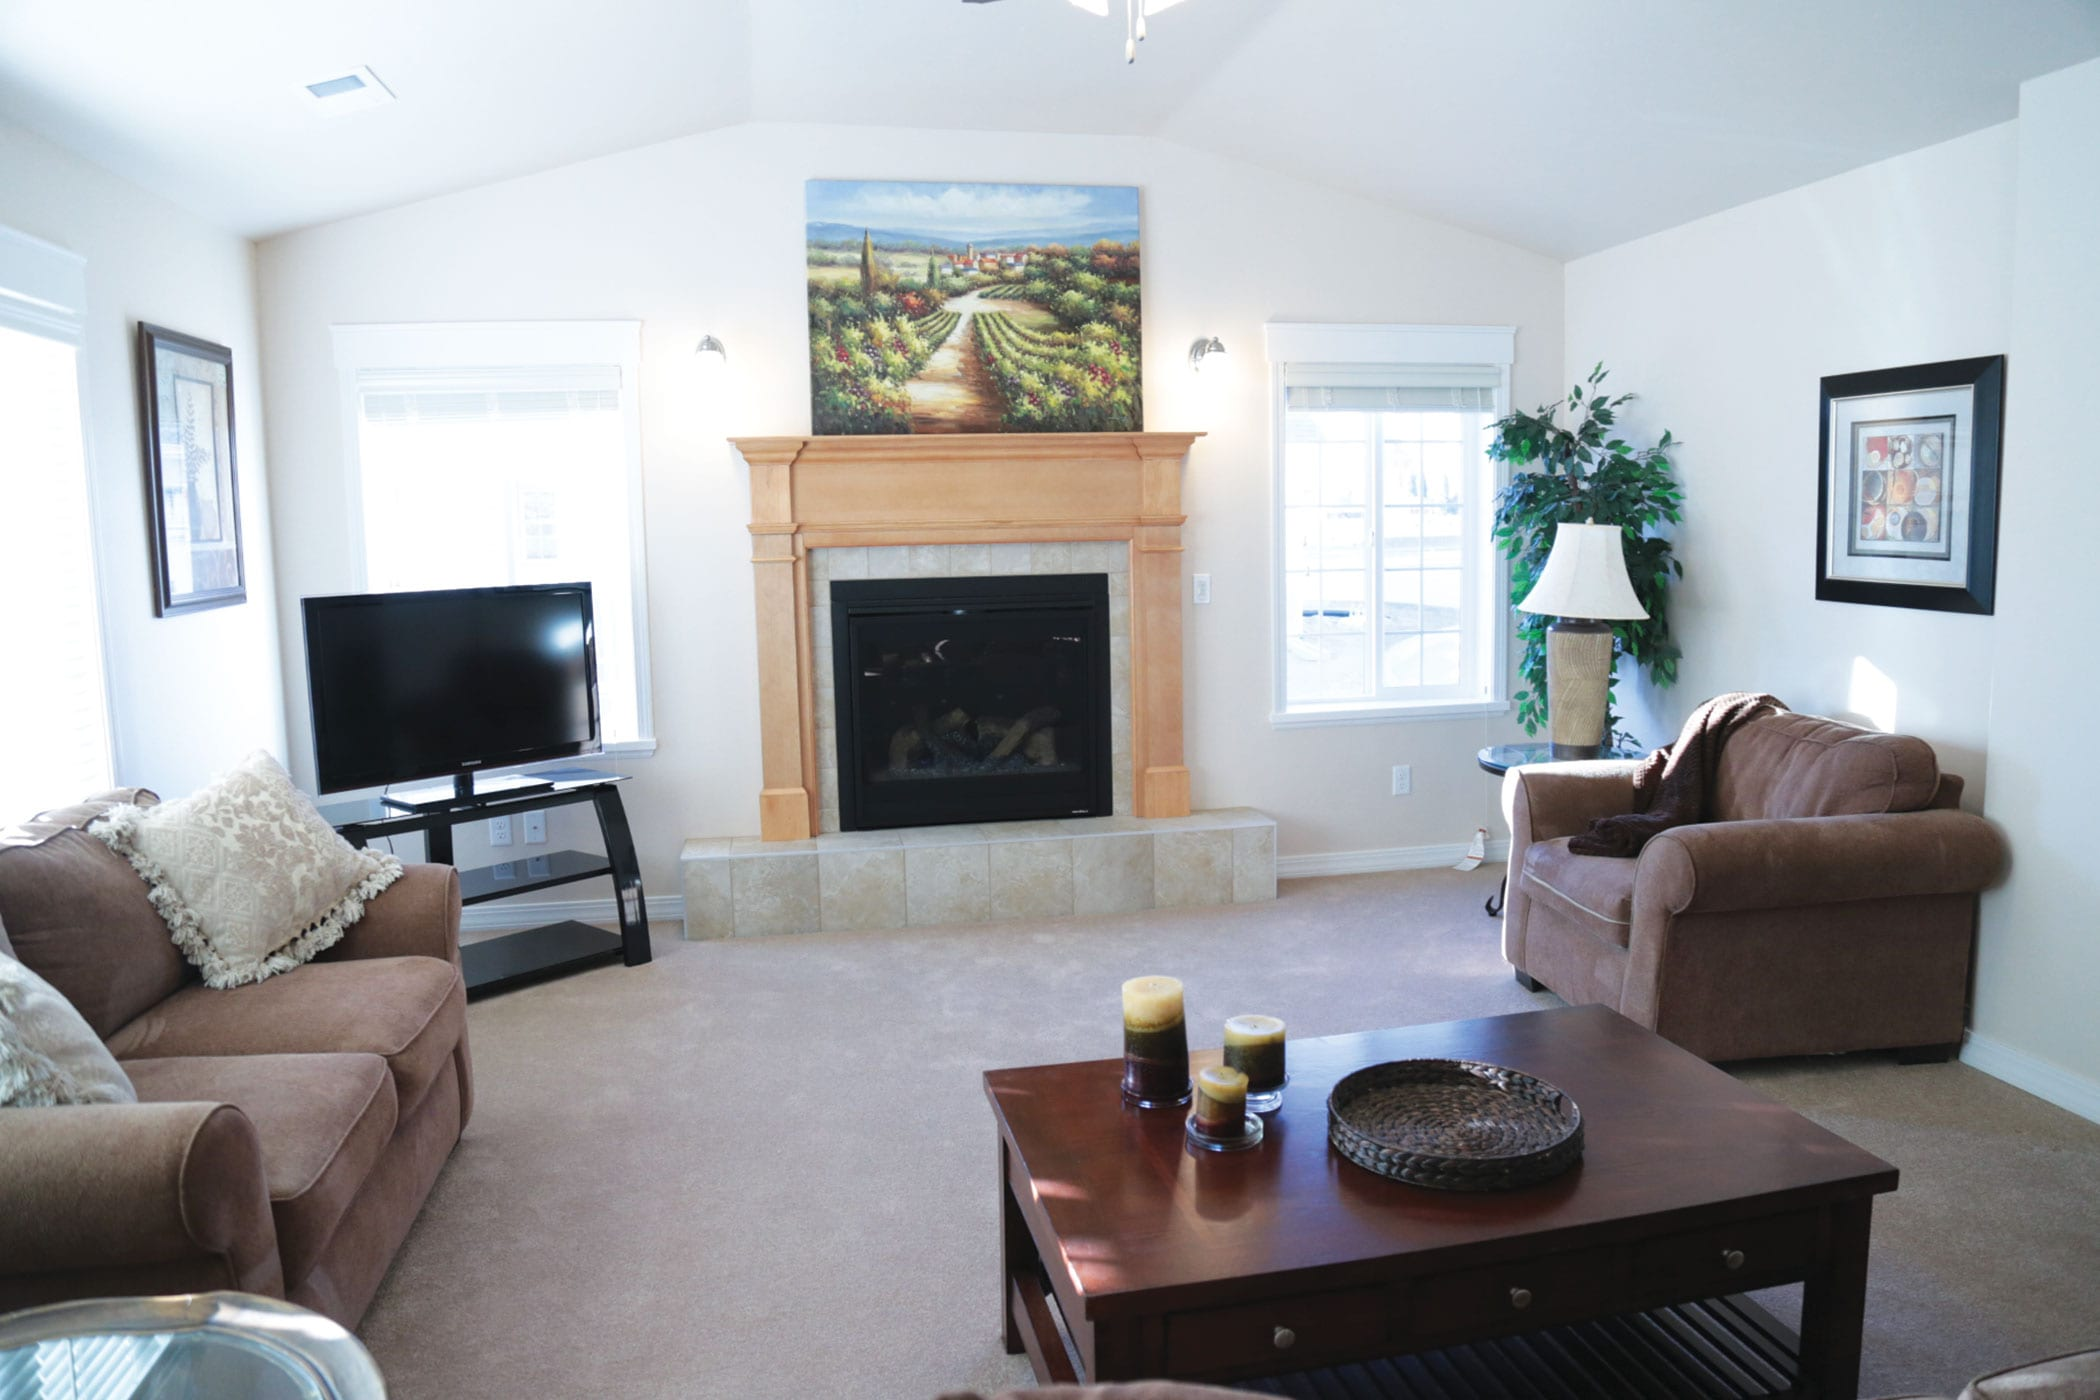 New-Cottage-Living-Room-Small | The Cottages of Hilltop